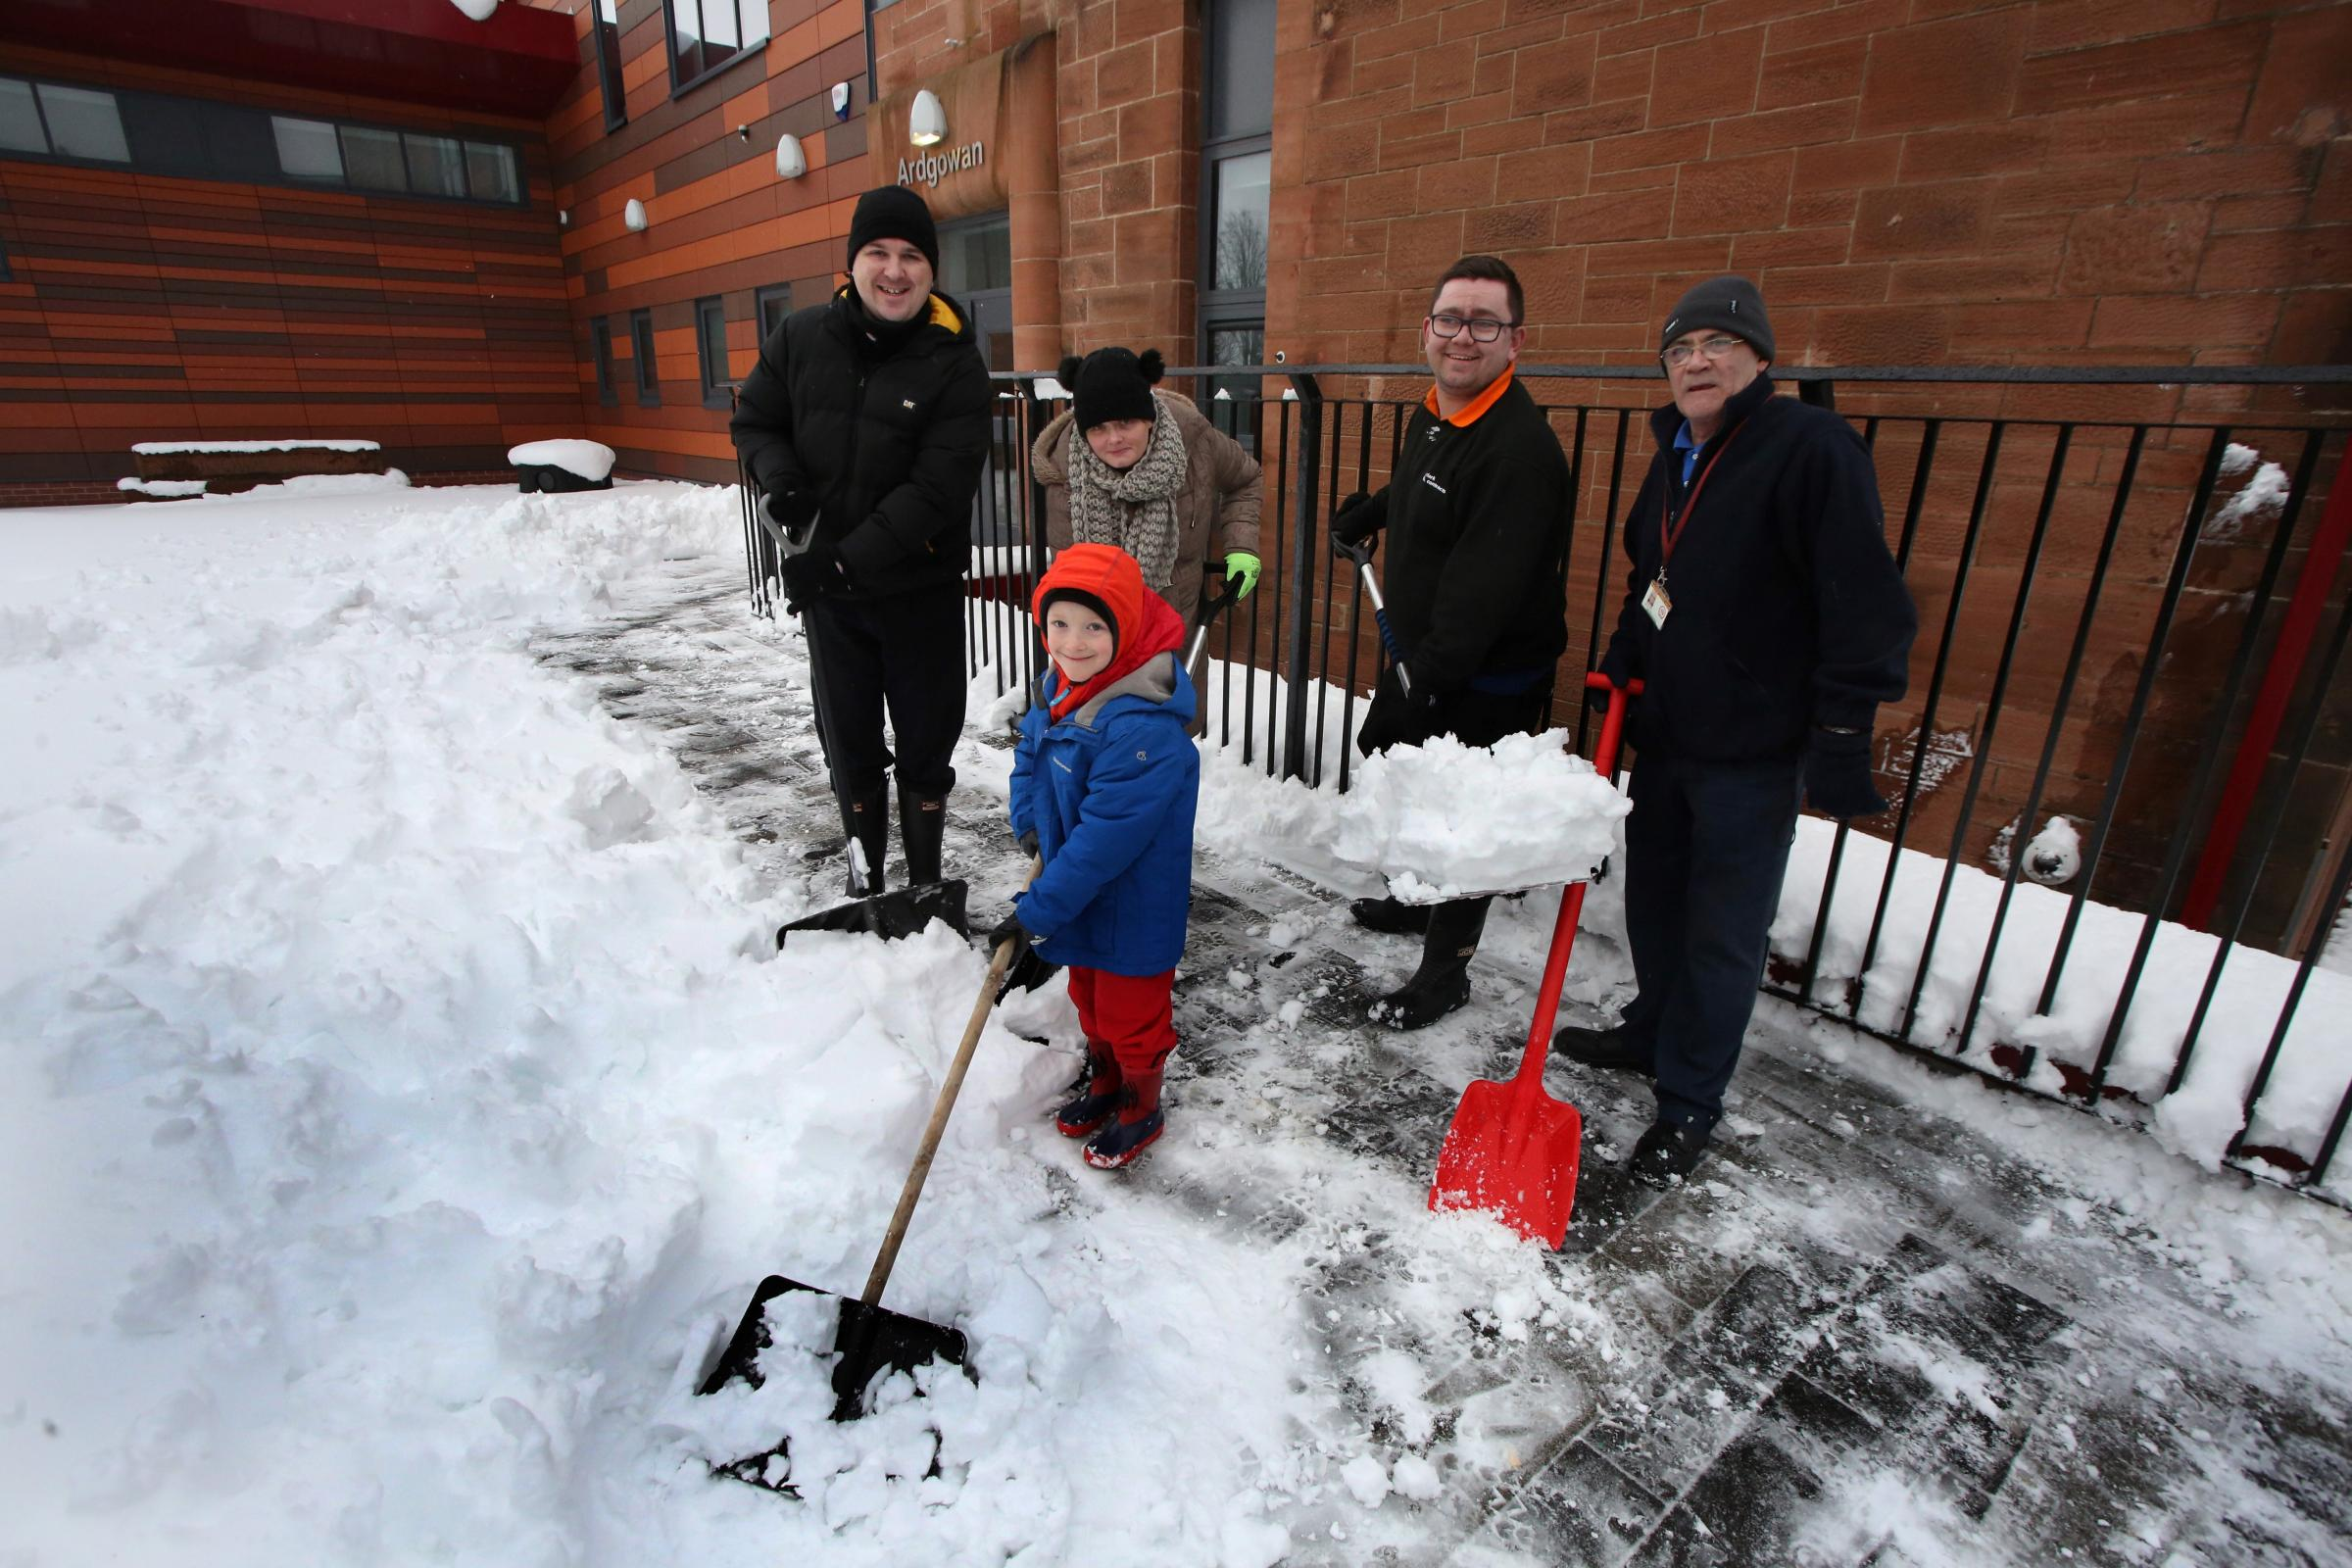 People help clear snow at Ardgowan Primary. Photo by George Munro